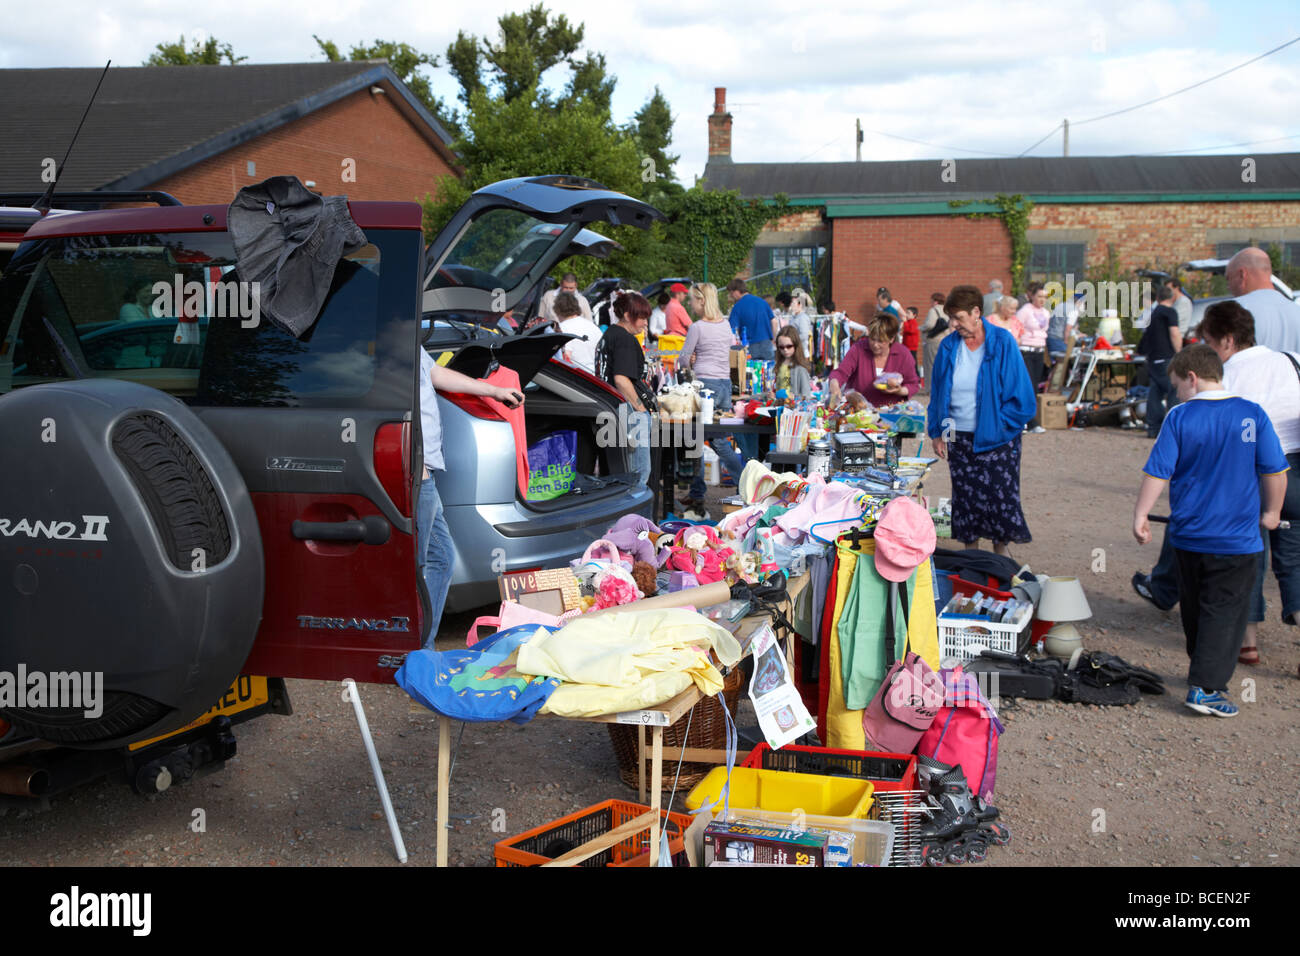 stalls and people browsing at a car boot sale in newtownabbey northern ireland uk - Stock Image